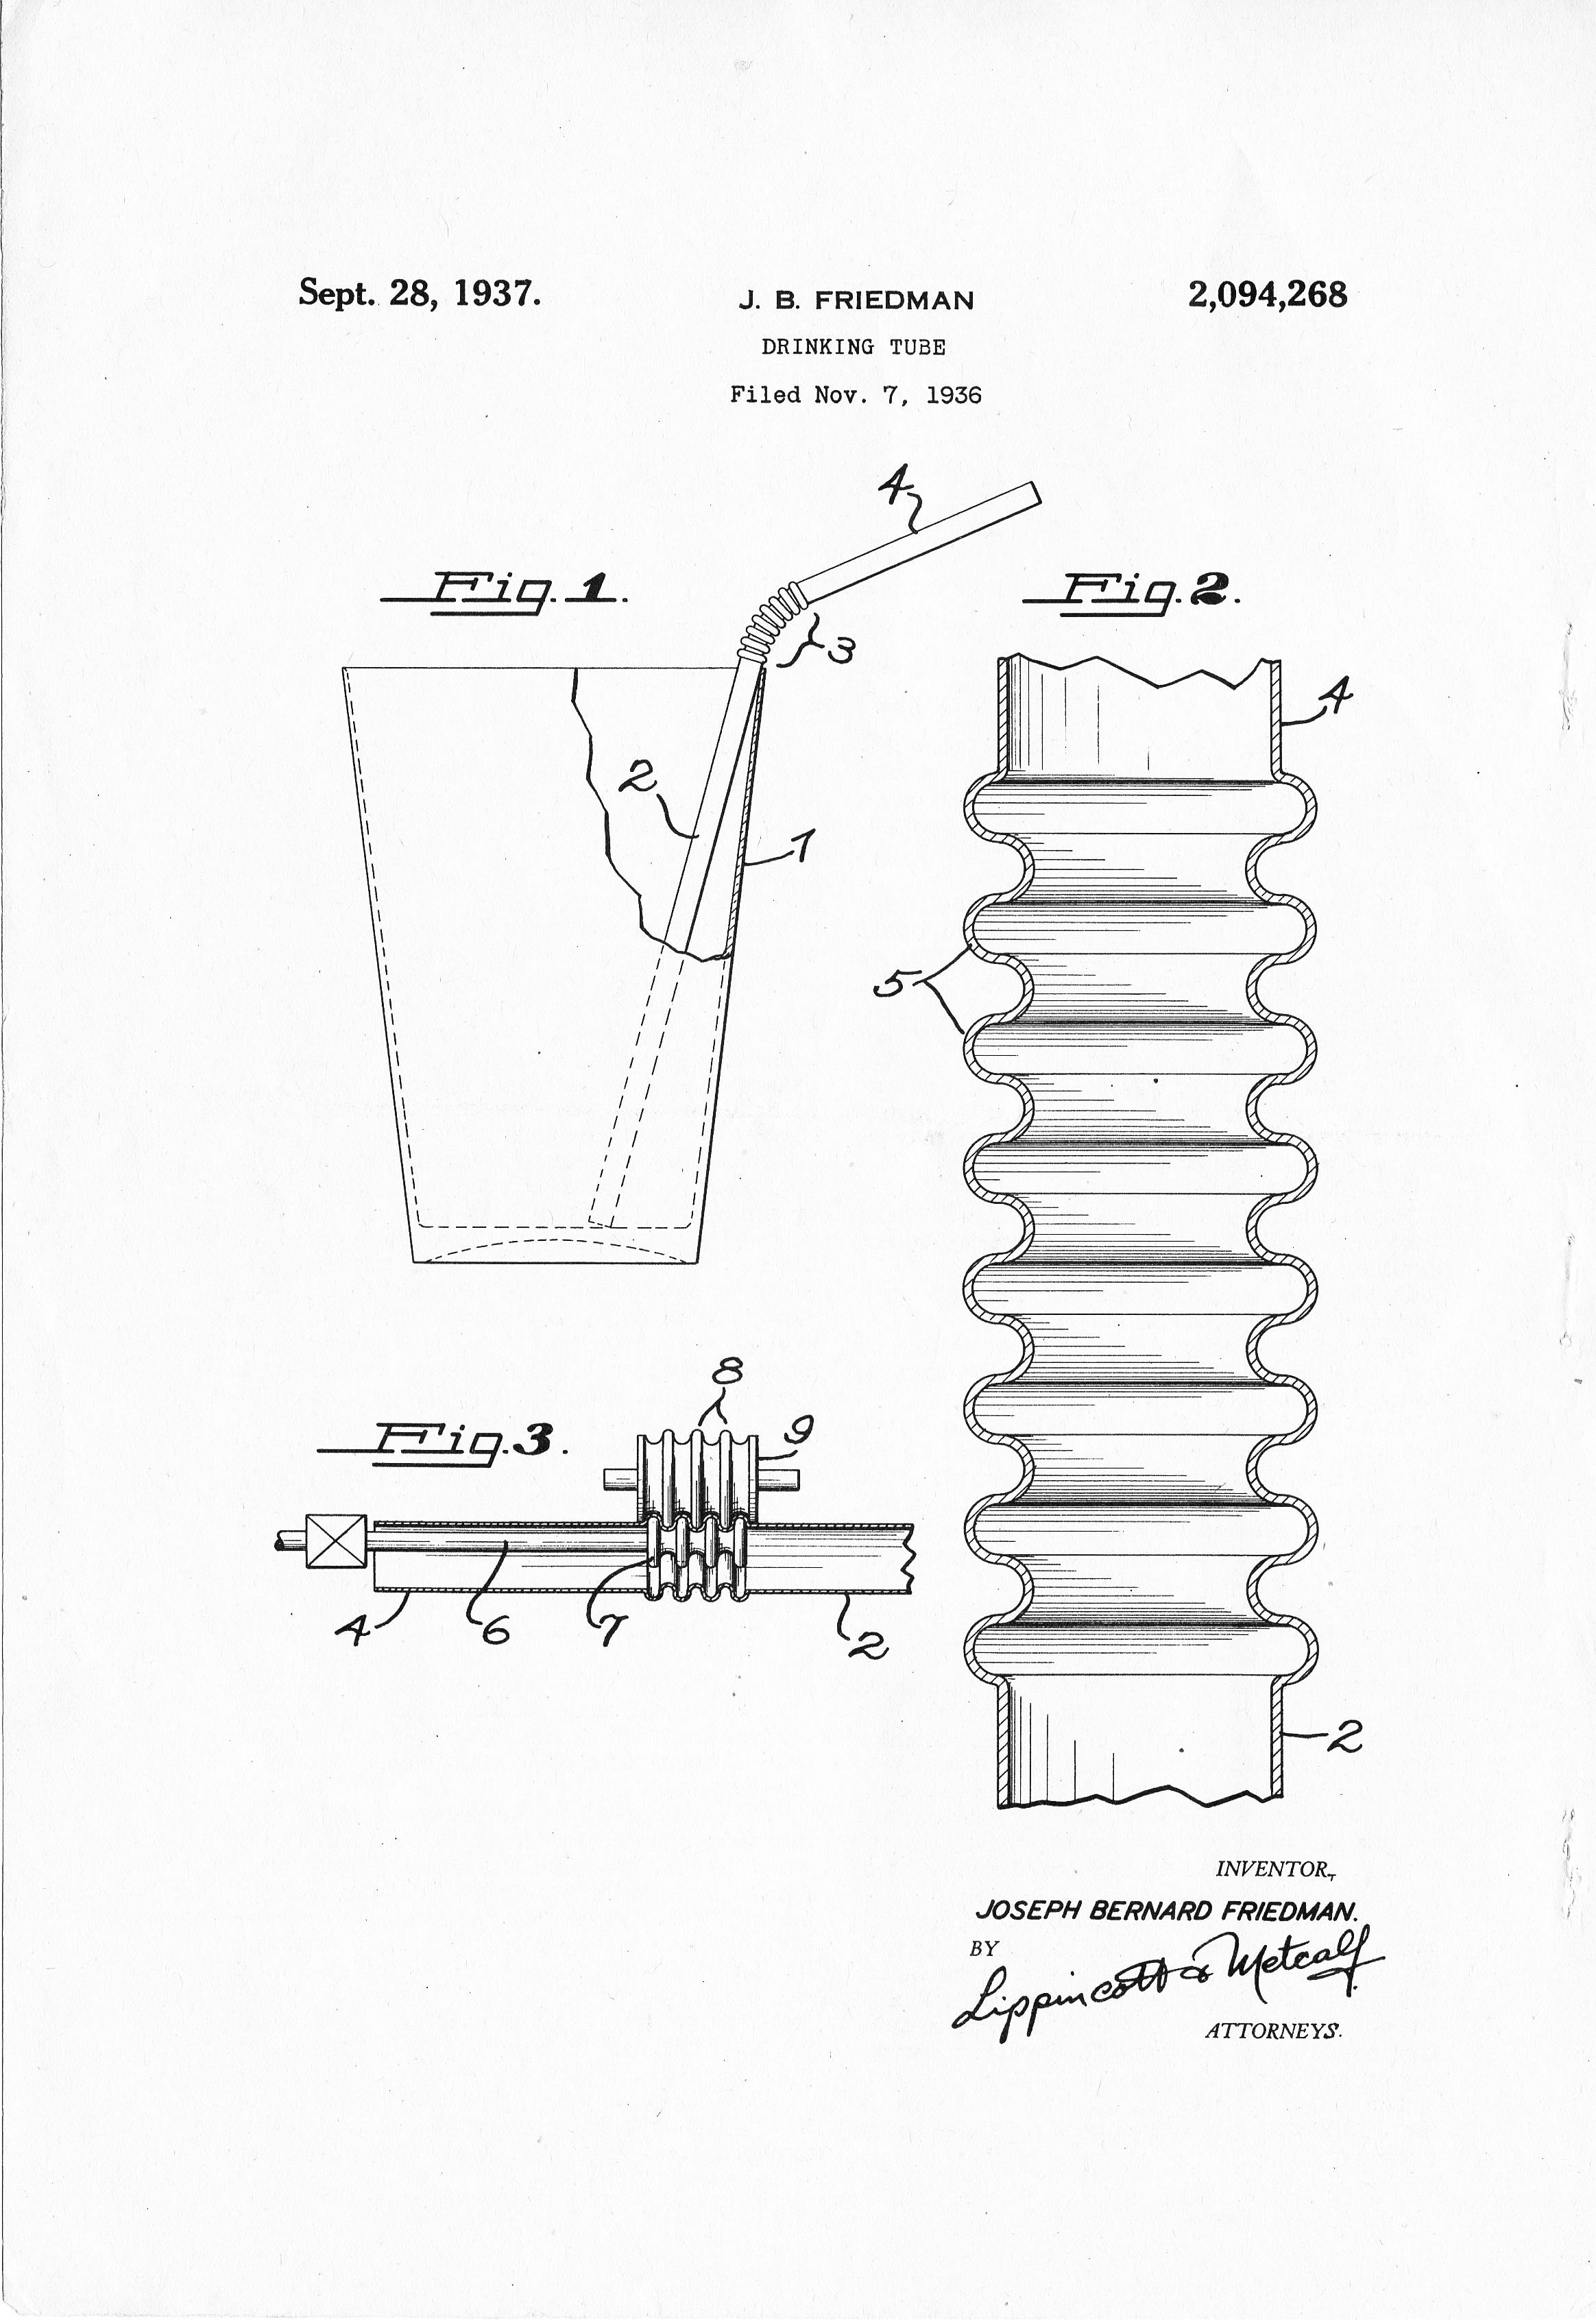 Image of the patent drawing for the flex straw